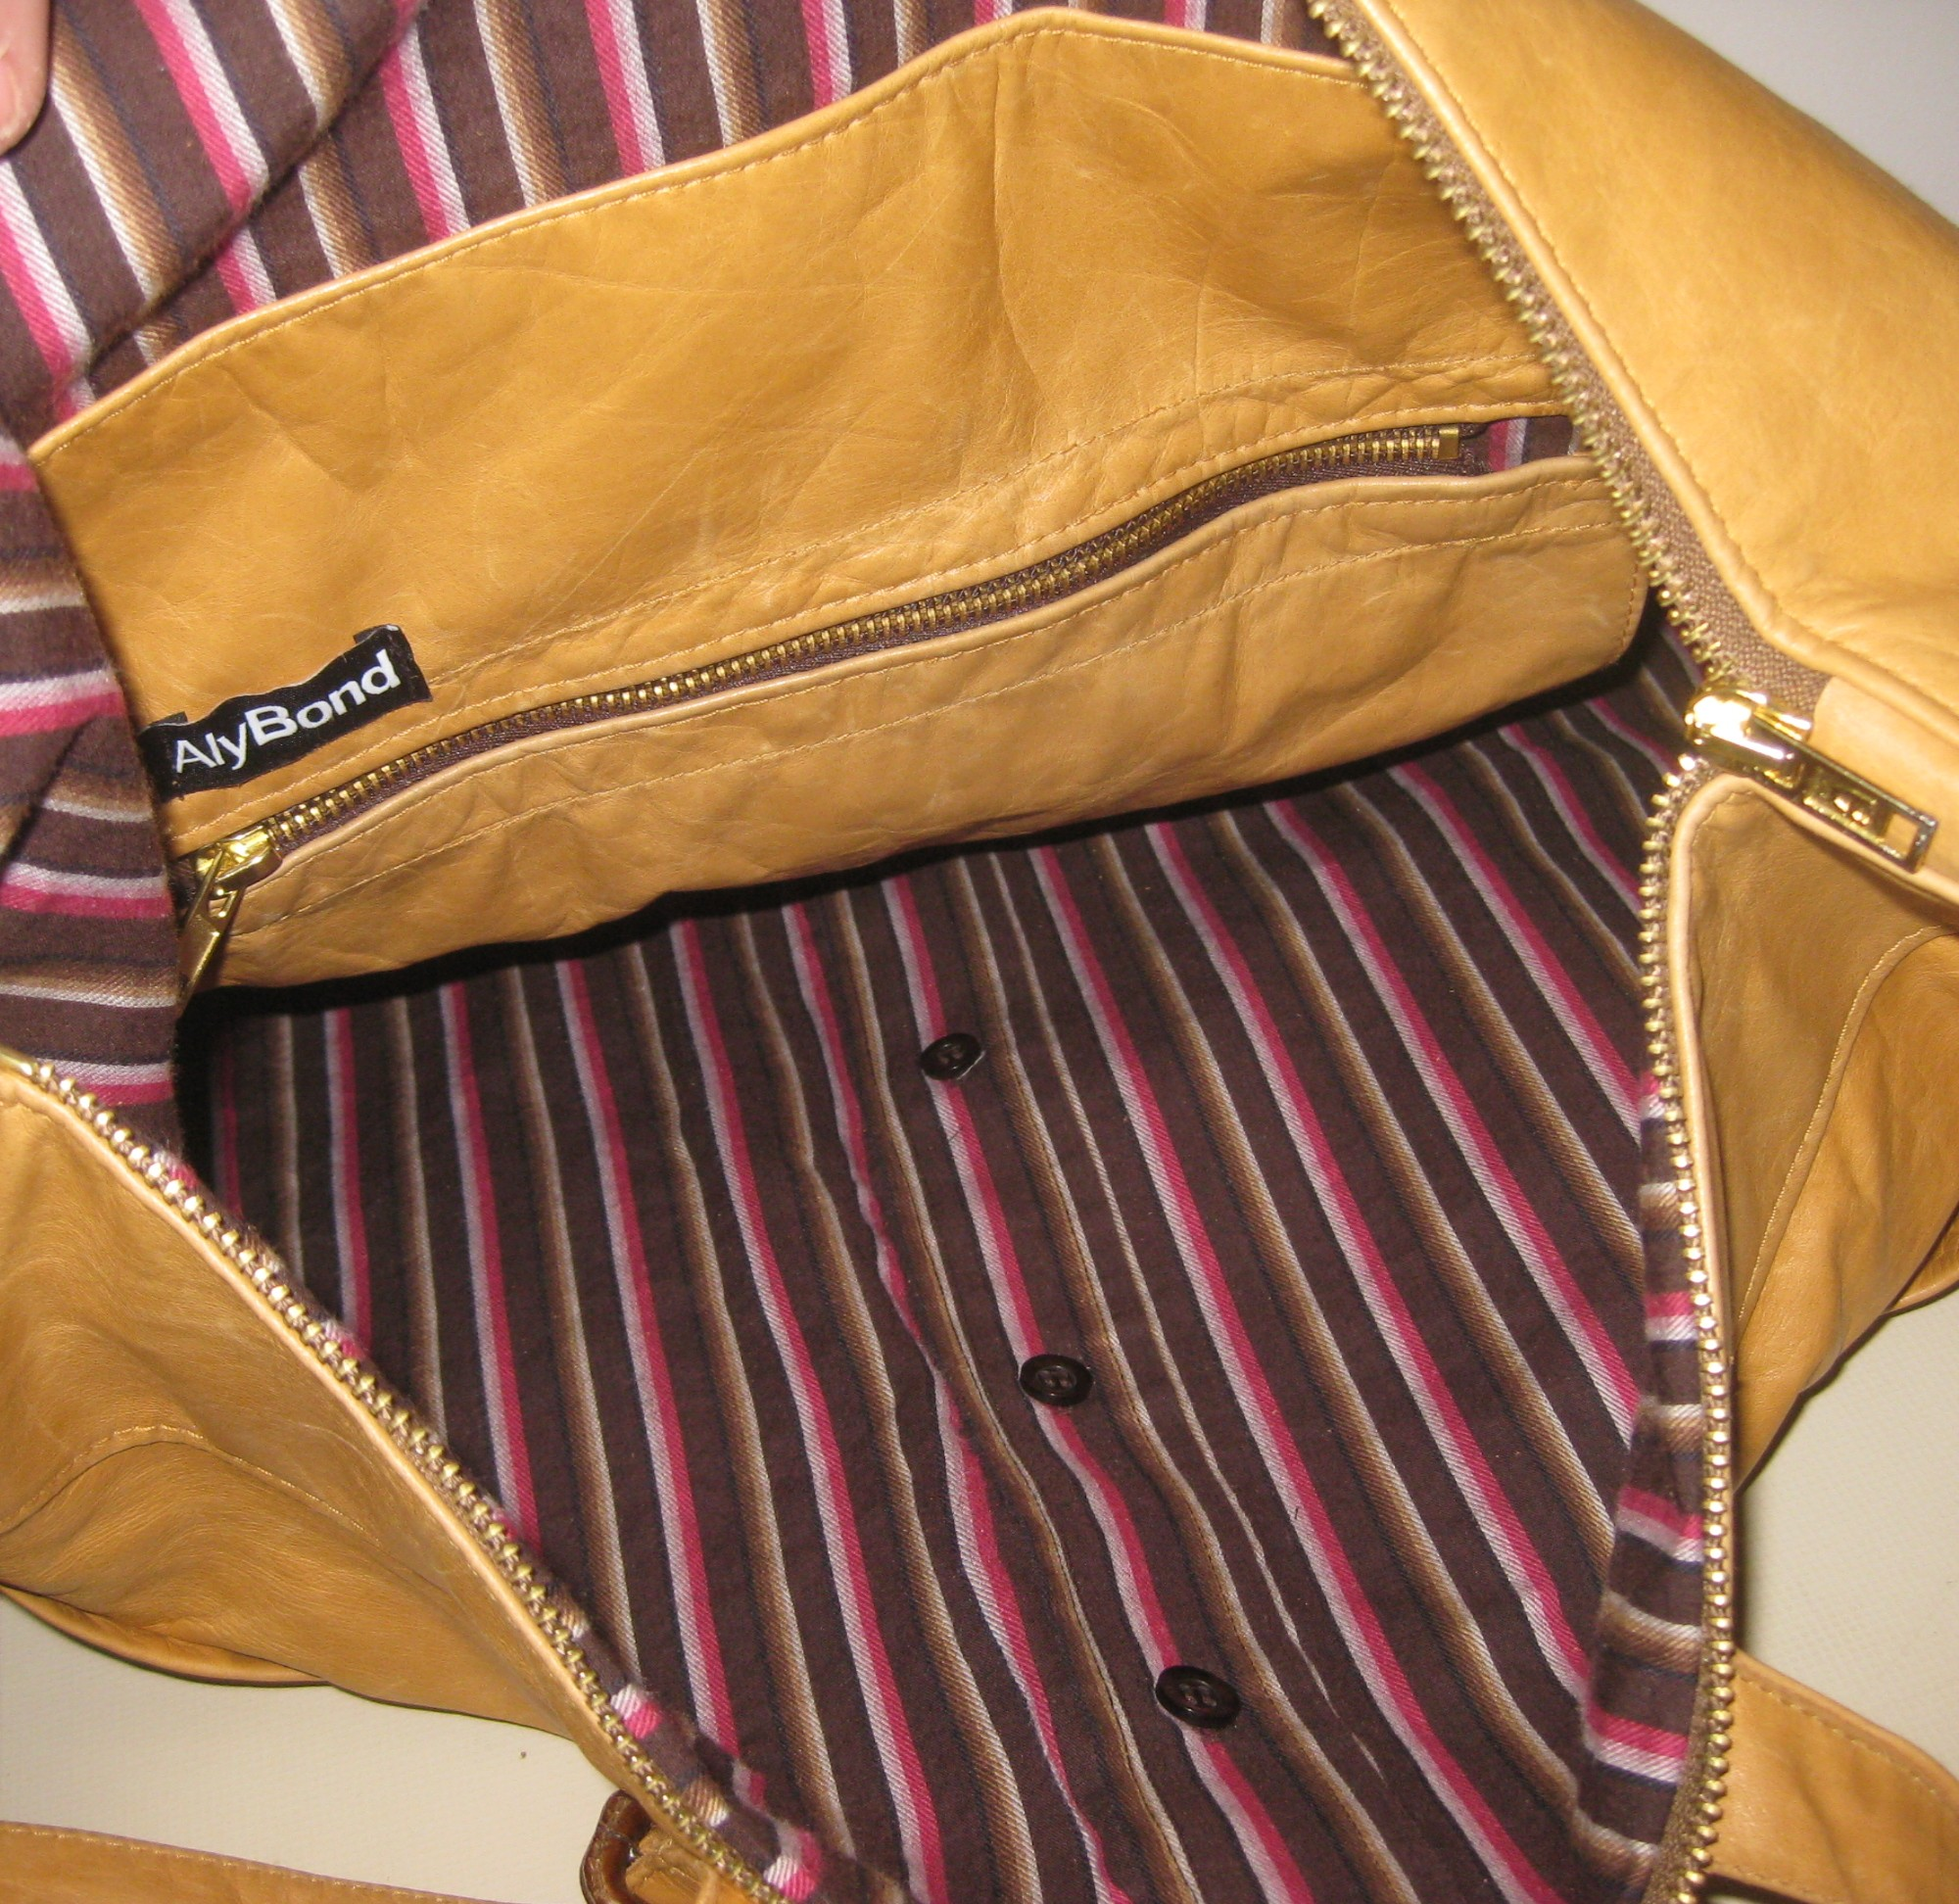 94fbaf910a39 Recycled Leather Jacket Archives - AlyBond.co.uk-Bags   Accessories ...